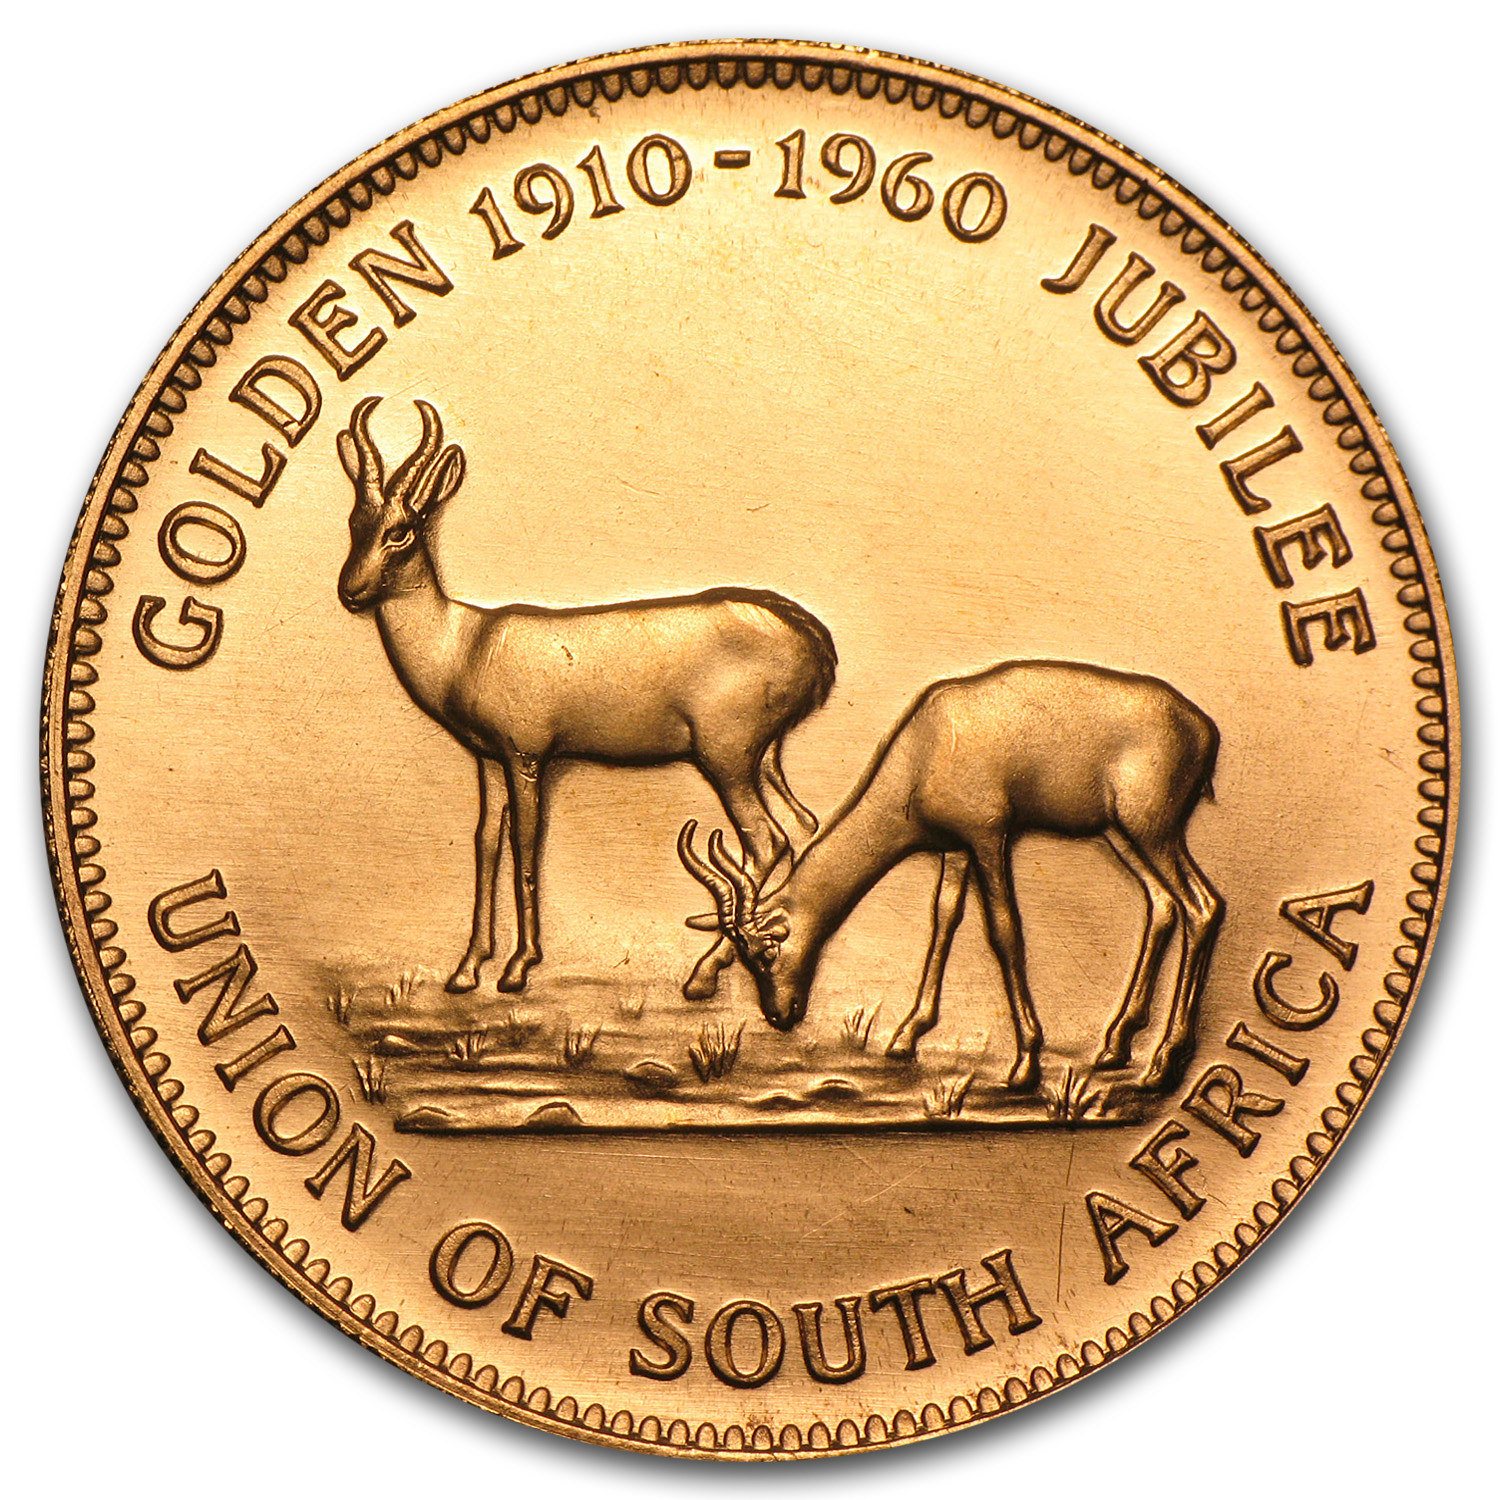 1960 South Africa Gold 1 oz Medal Golden Jubilee (English)